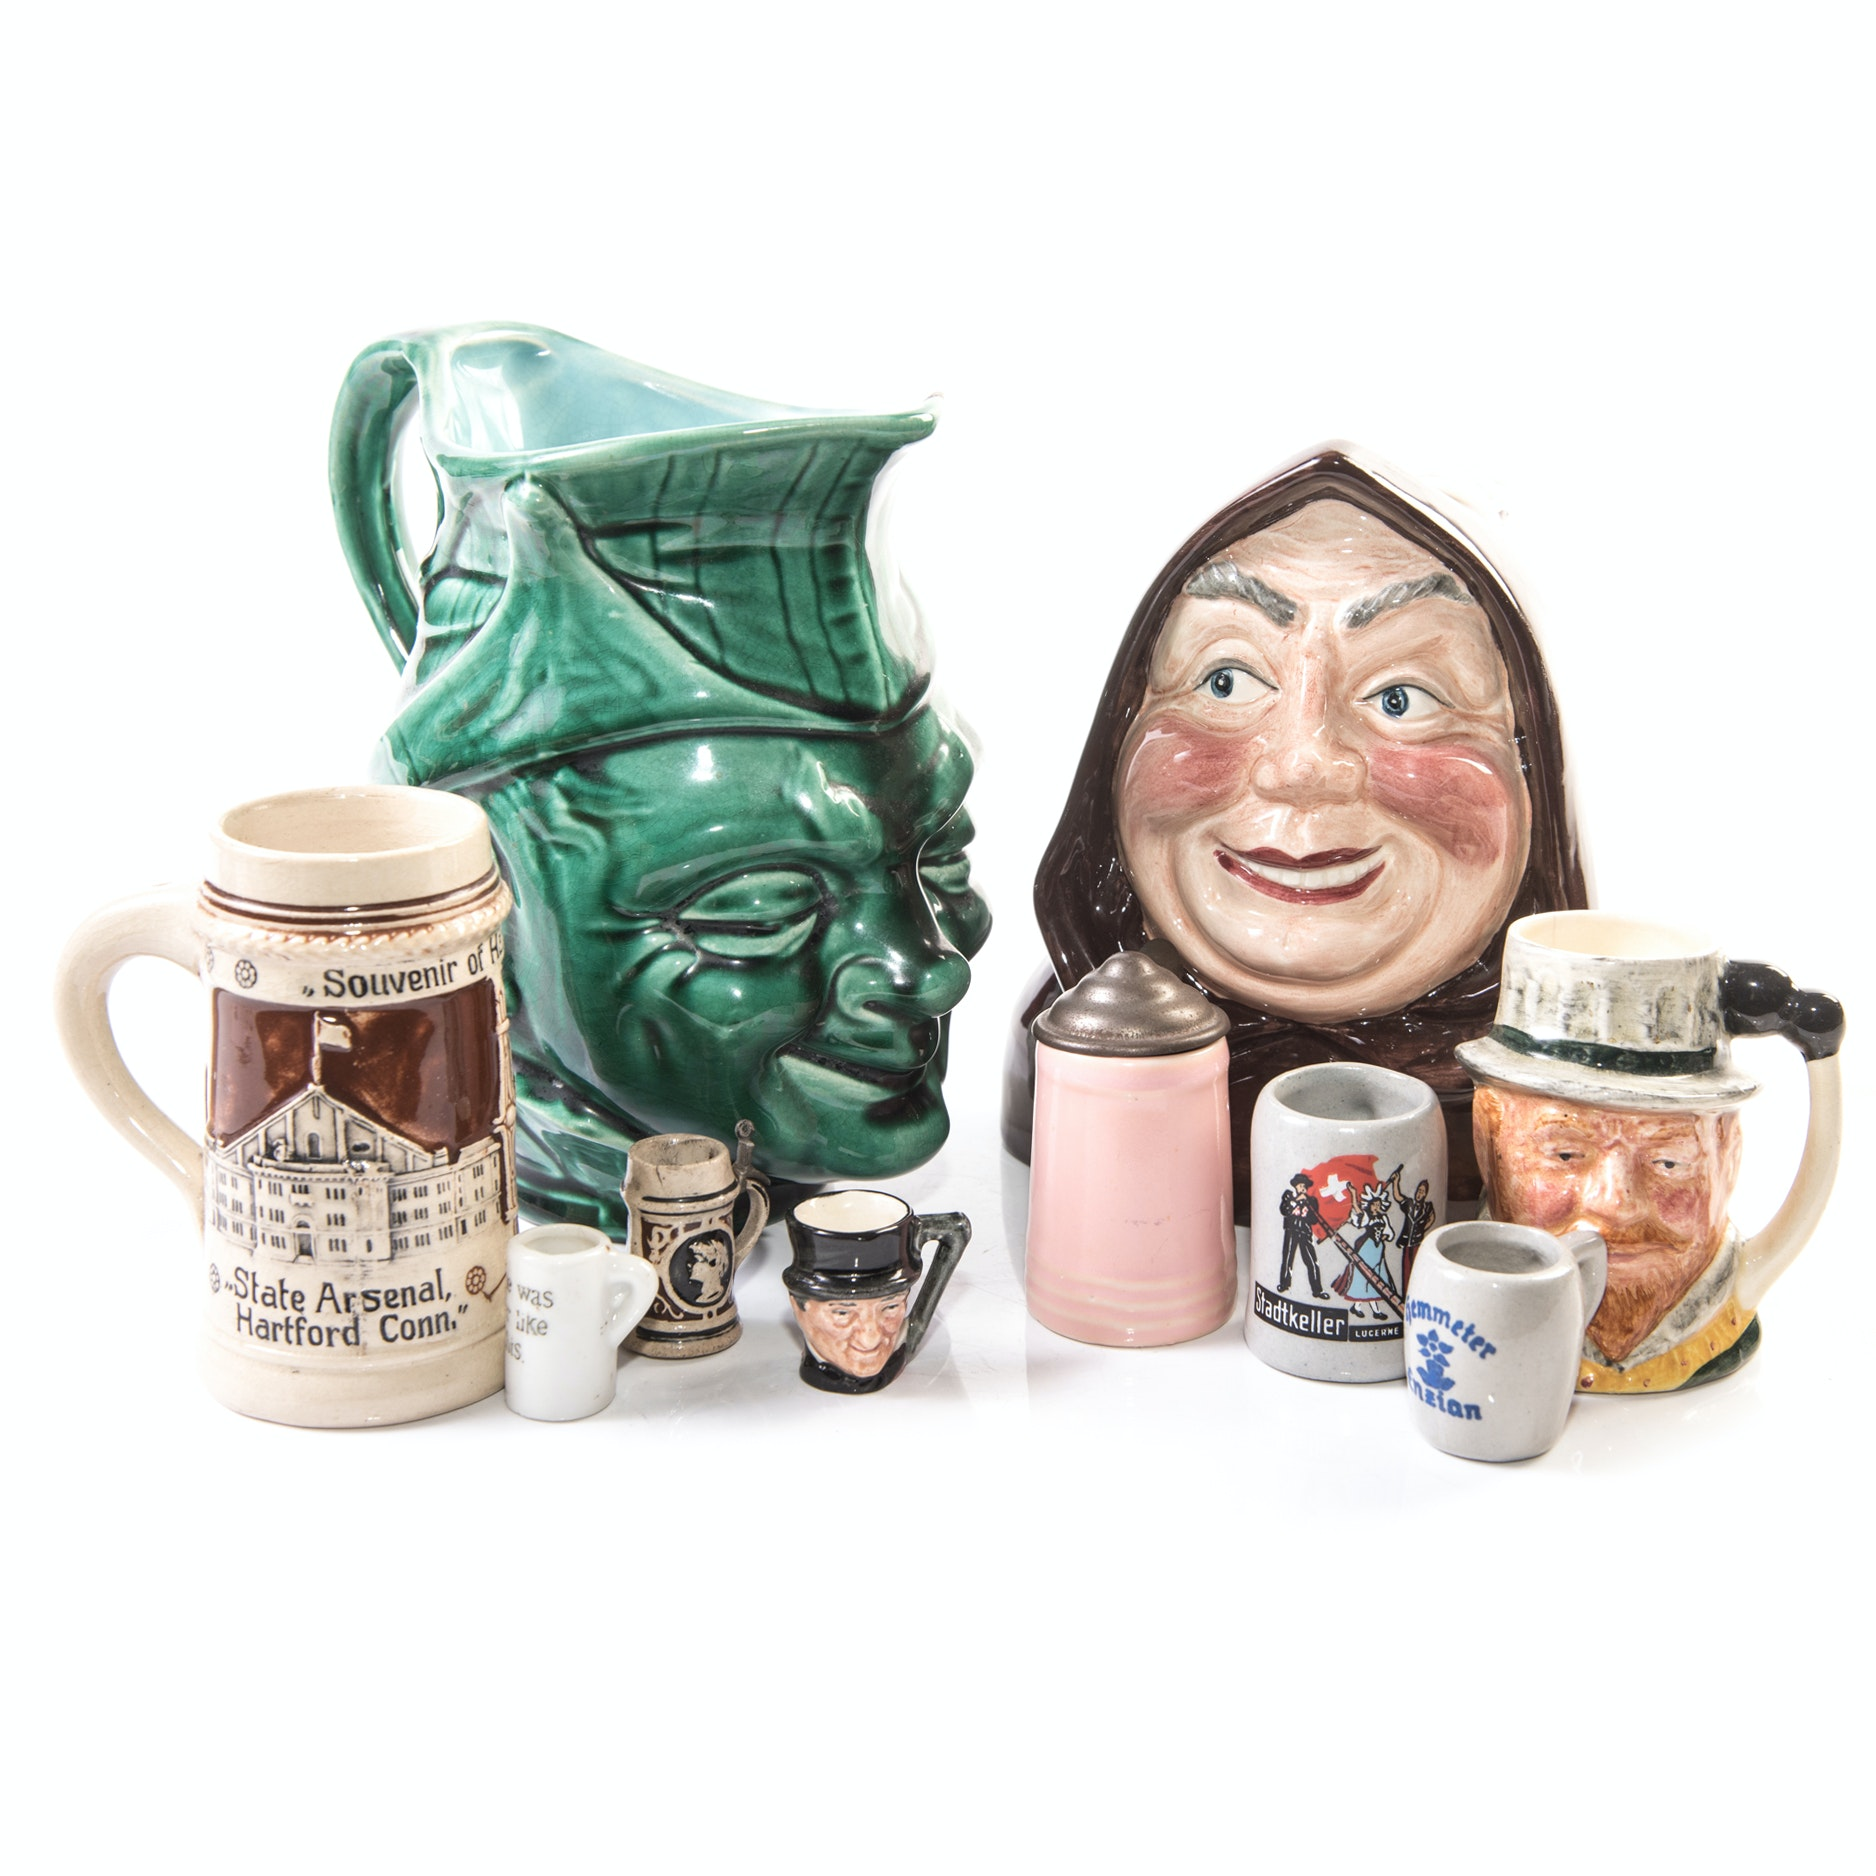 Vintage Character Mugs and Miniature Beer Steins